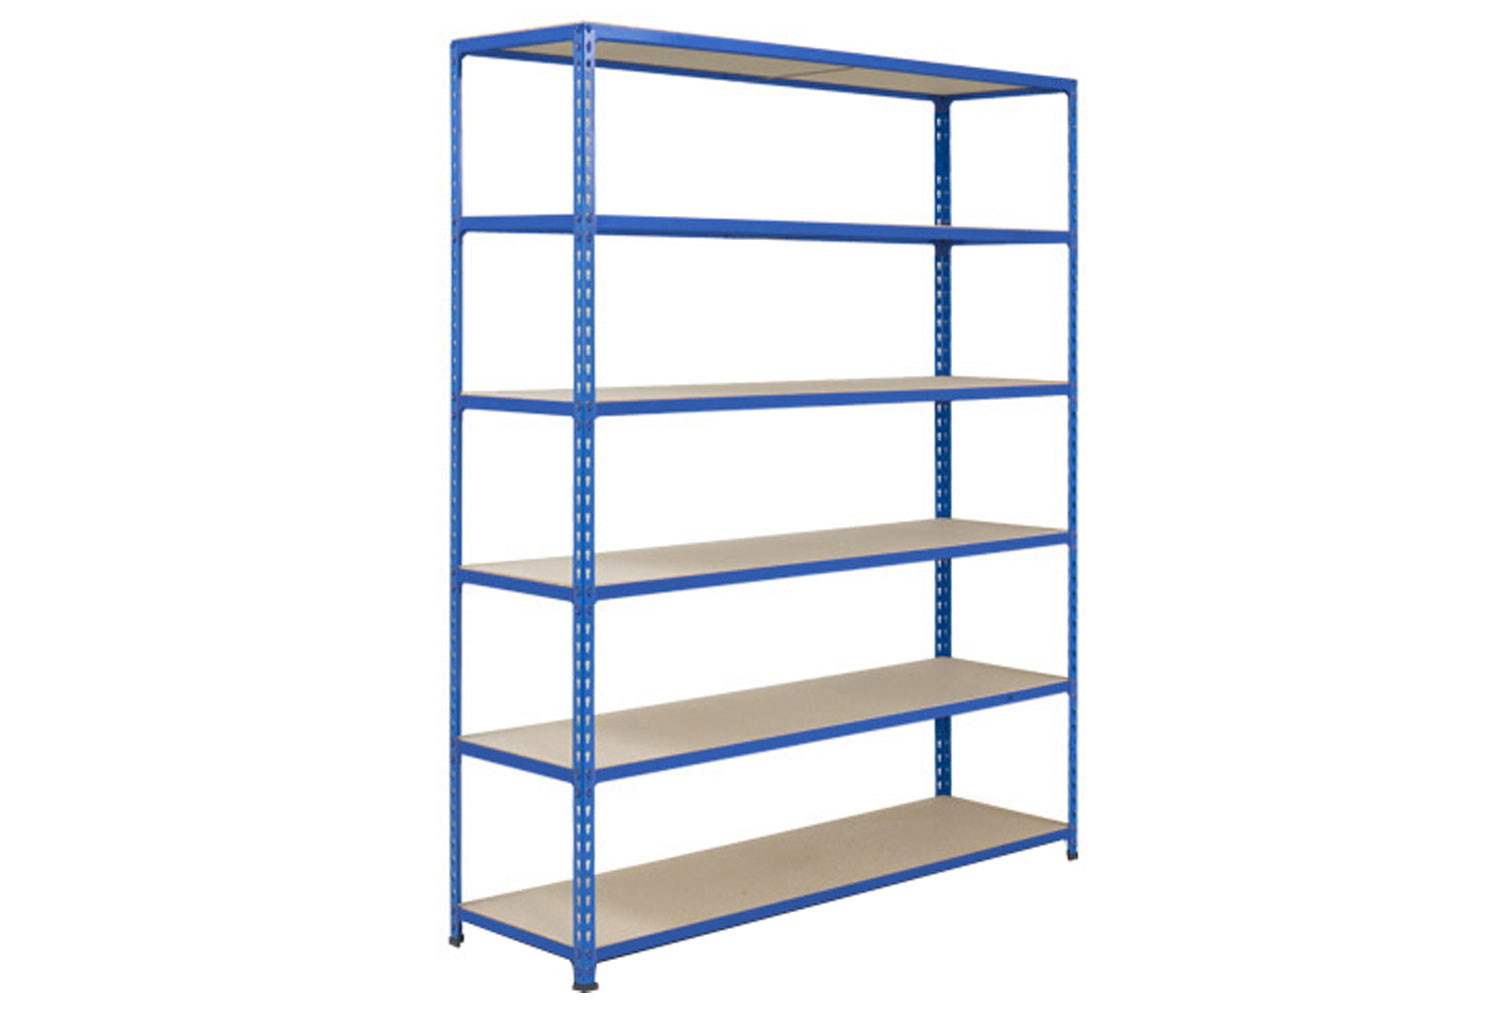 Rapid 2 Shelving With 6 Chipboard Shelves 1525wx1980h (Blue)